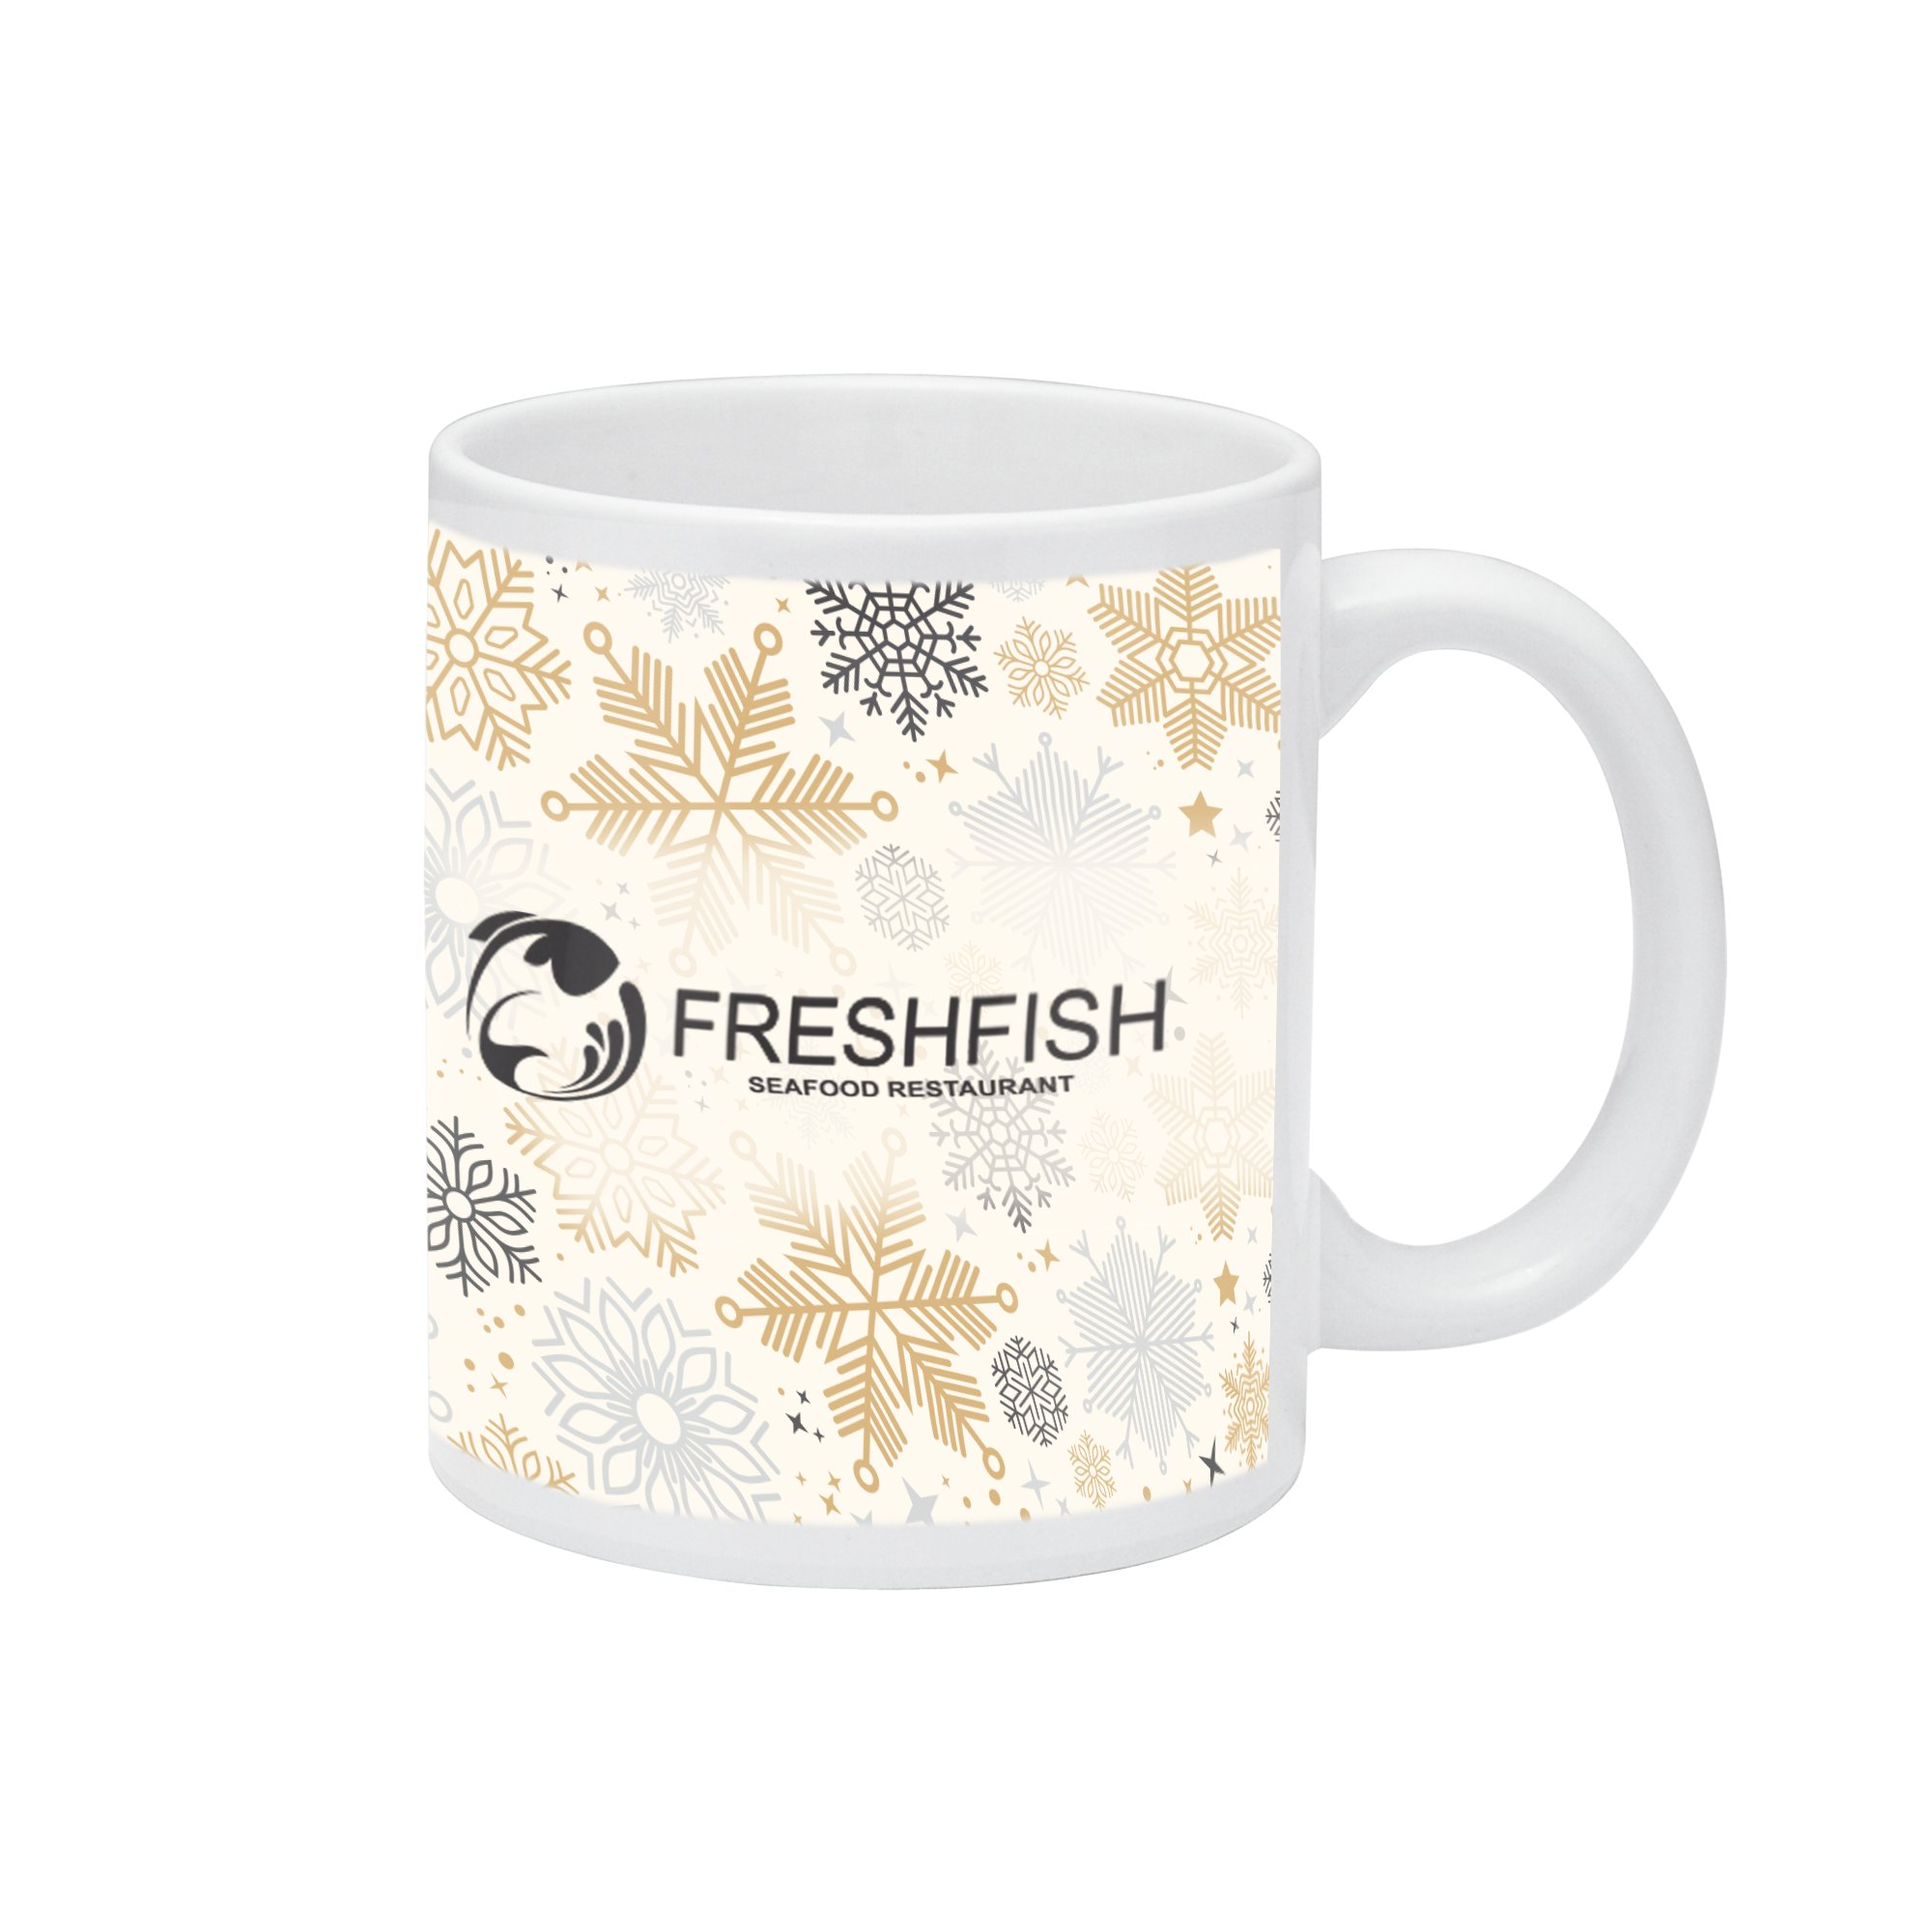 Your customers will never let this colourful mug out of their sight!. Each 11 oz. mug features the dynamic design of your choice and your personalized message and/or logo. It's a business giveaway guaranteed to enhance your name and impress your customers.